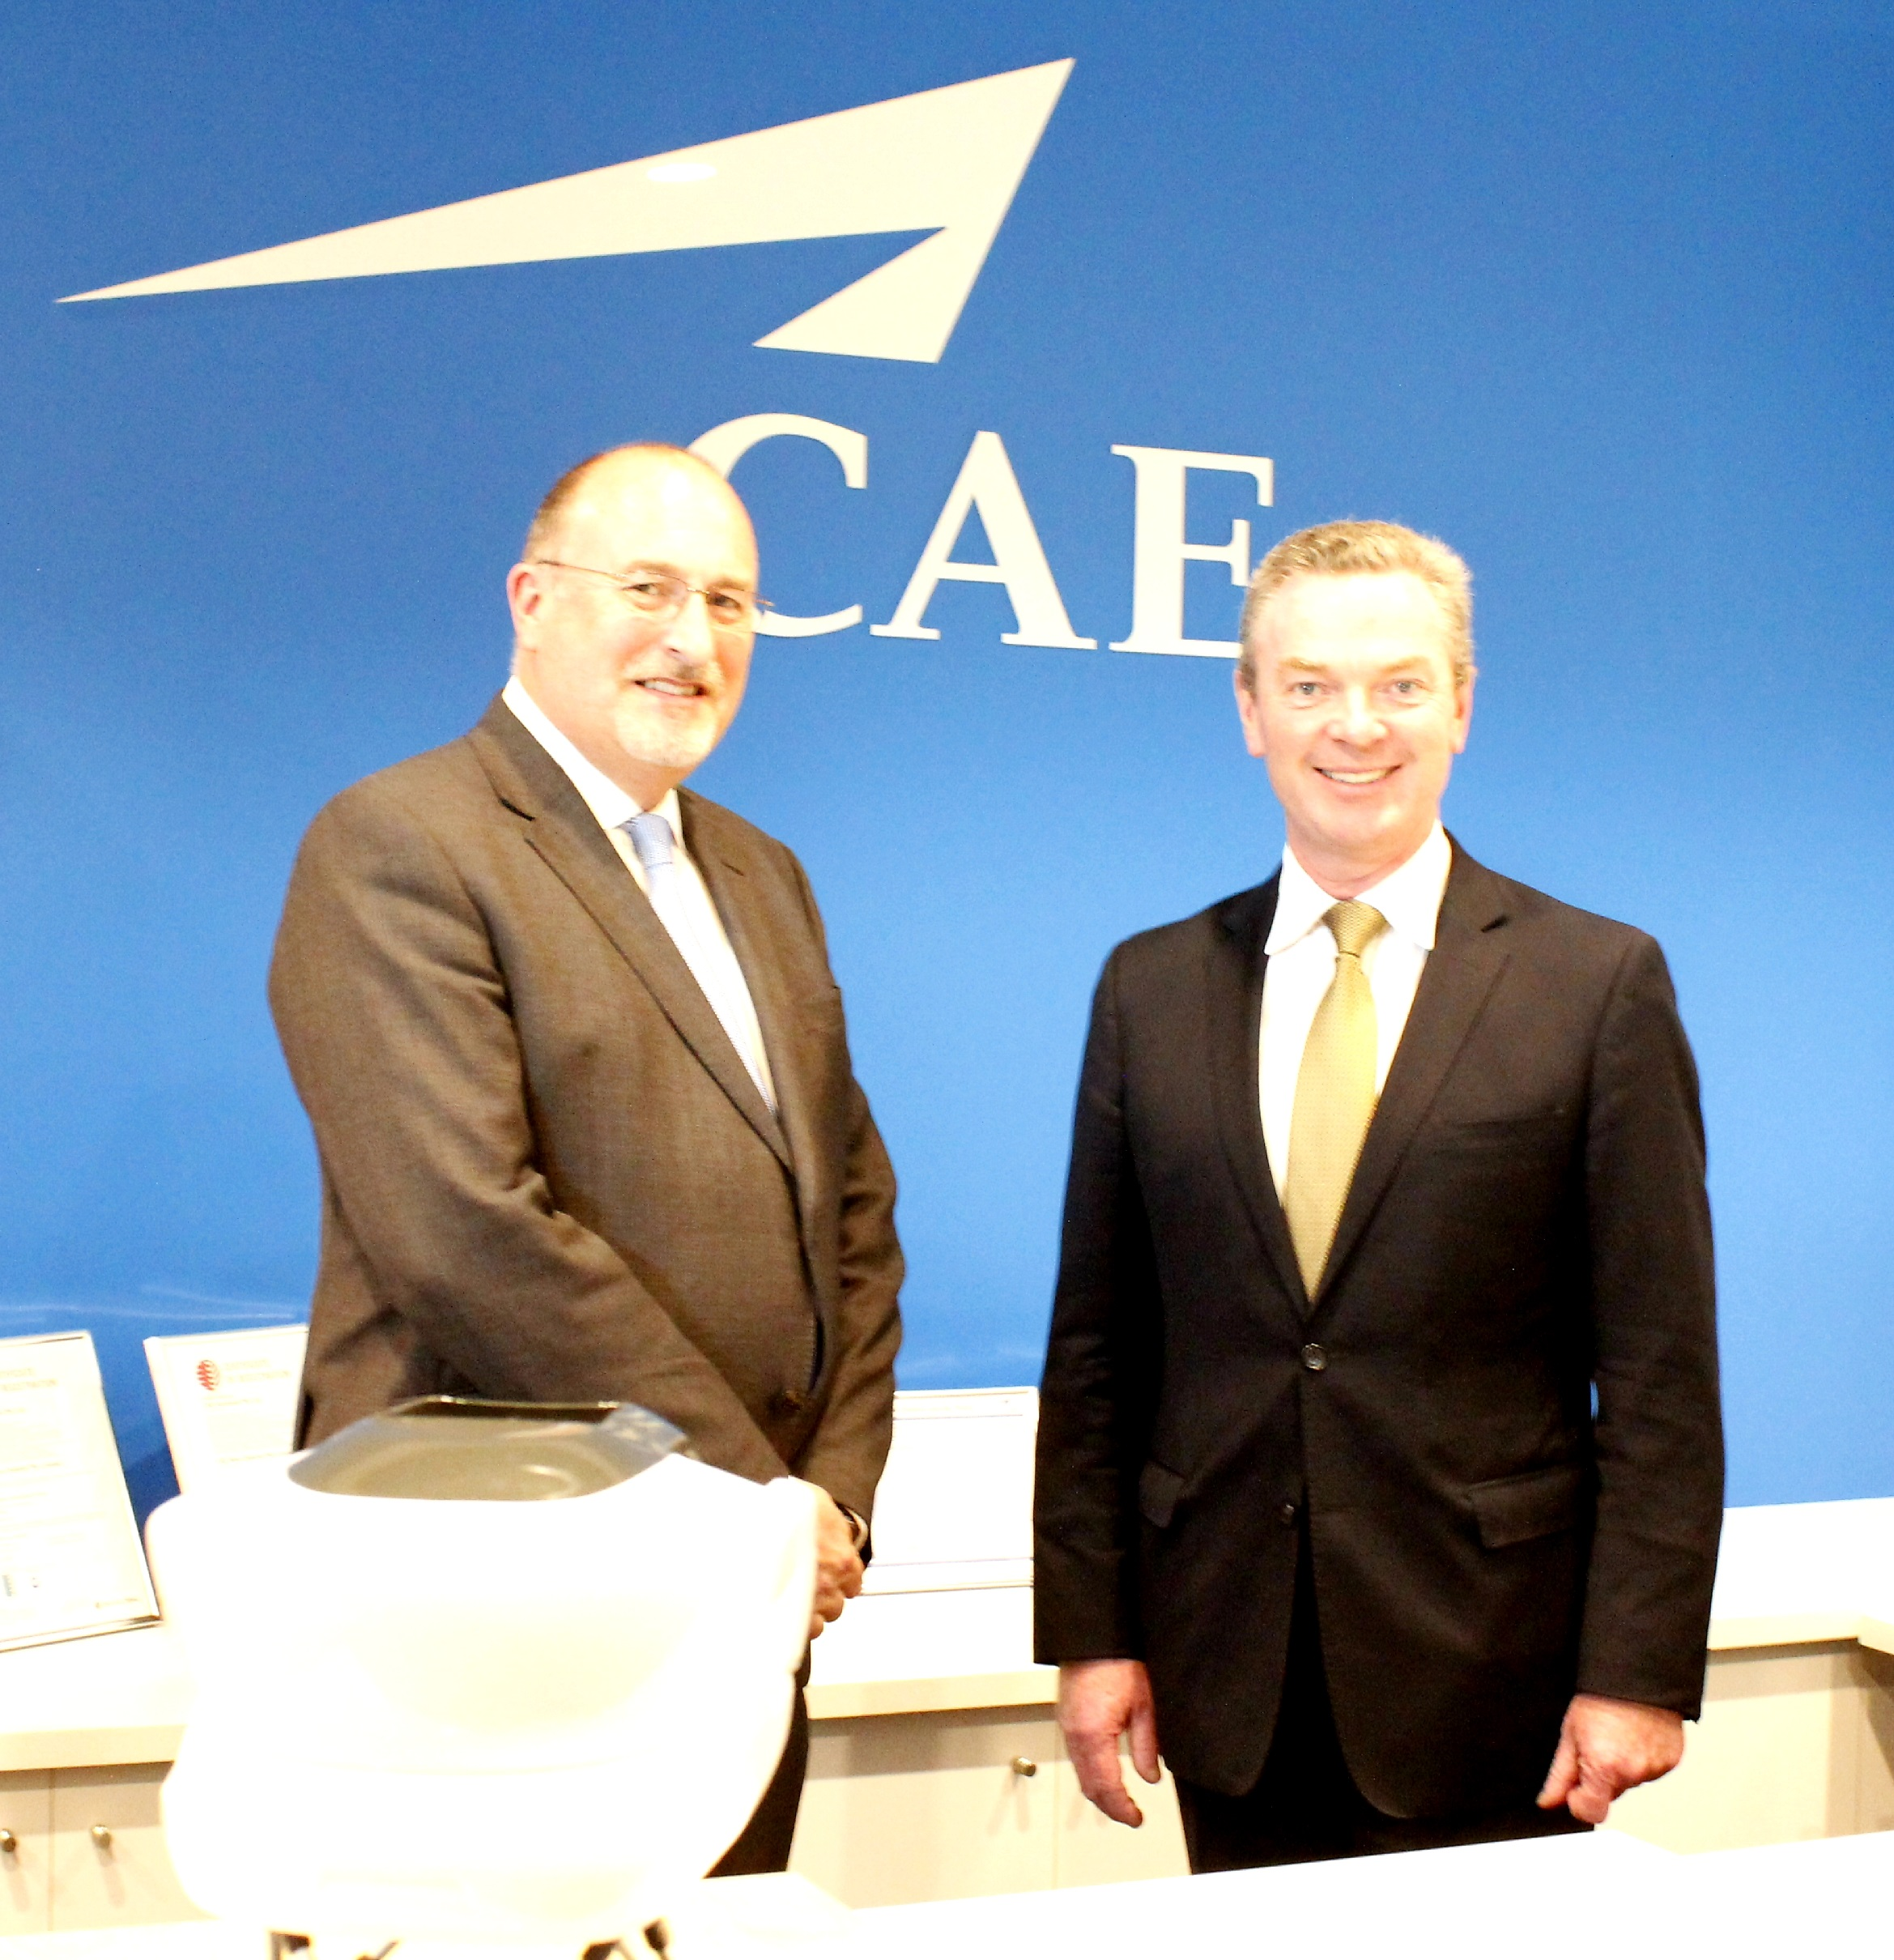 b0a9b718f2a Ian Bell (left), CAE's Vice President & General Manager,  Asia-Pacific/Middle East was joined by the Hon Christopher Pyne (right),  Australia's Minister for ...